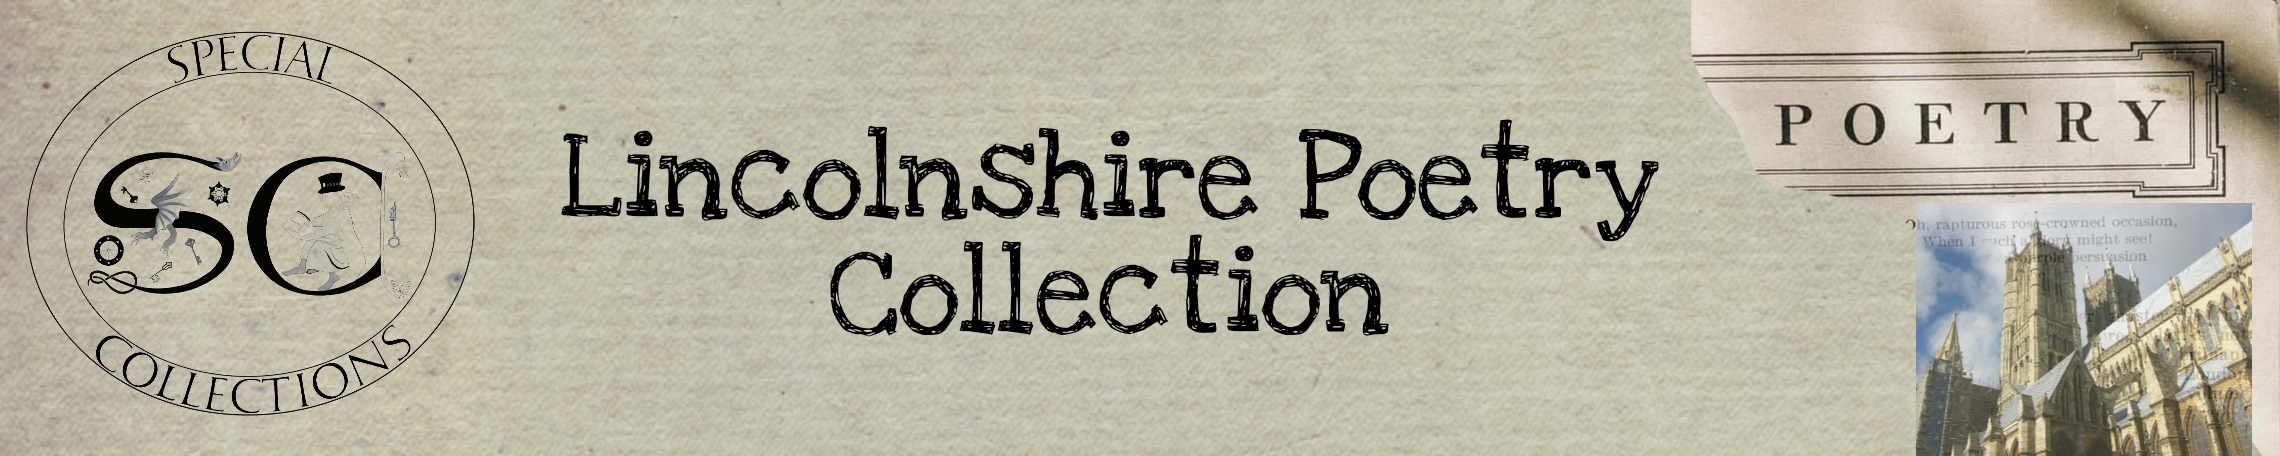 Lincolnshire Poetry Collection Header